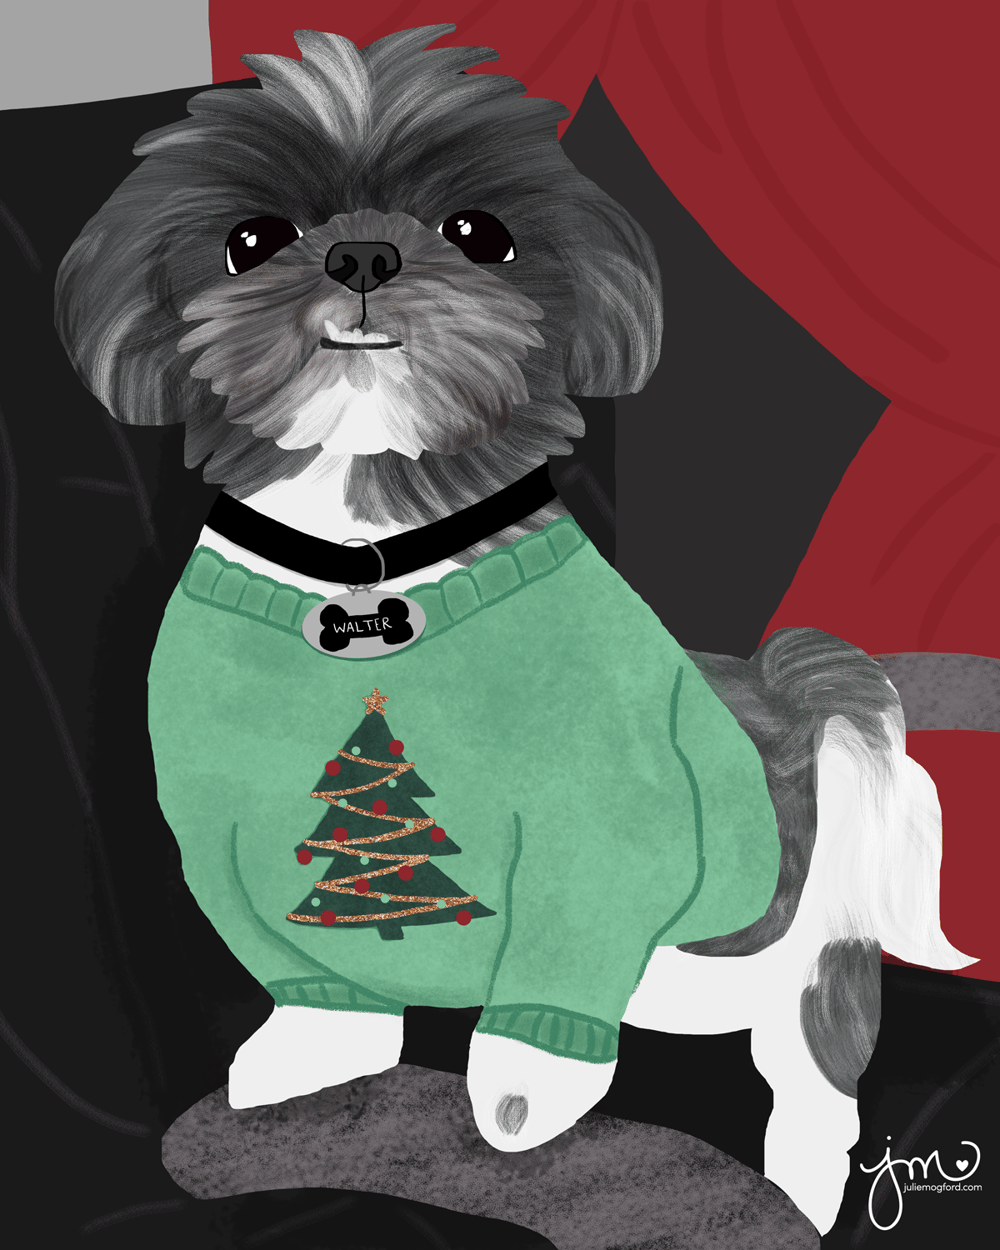 2018 Christmas with Walter - image 2 - student project